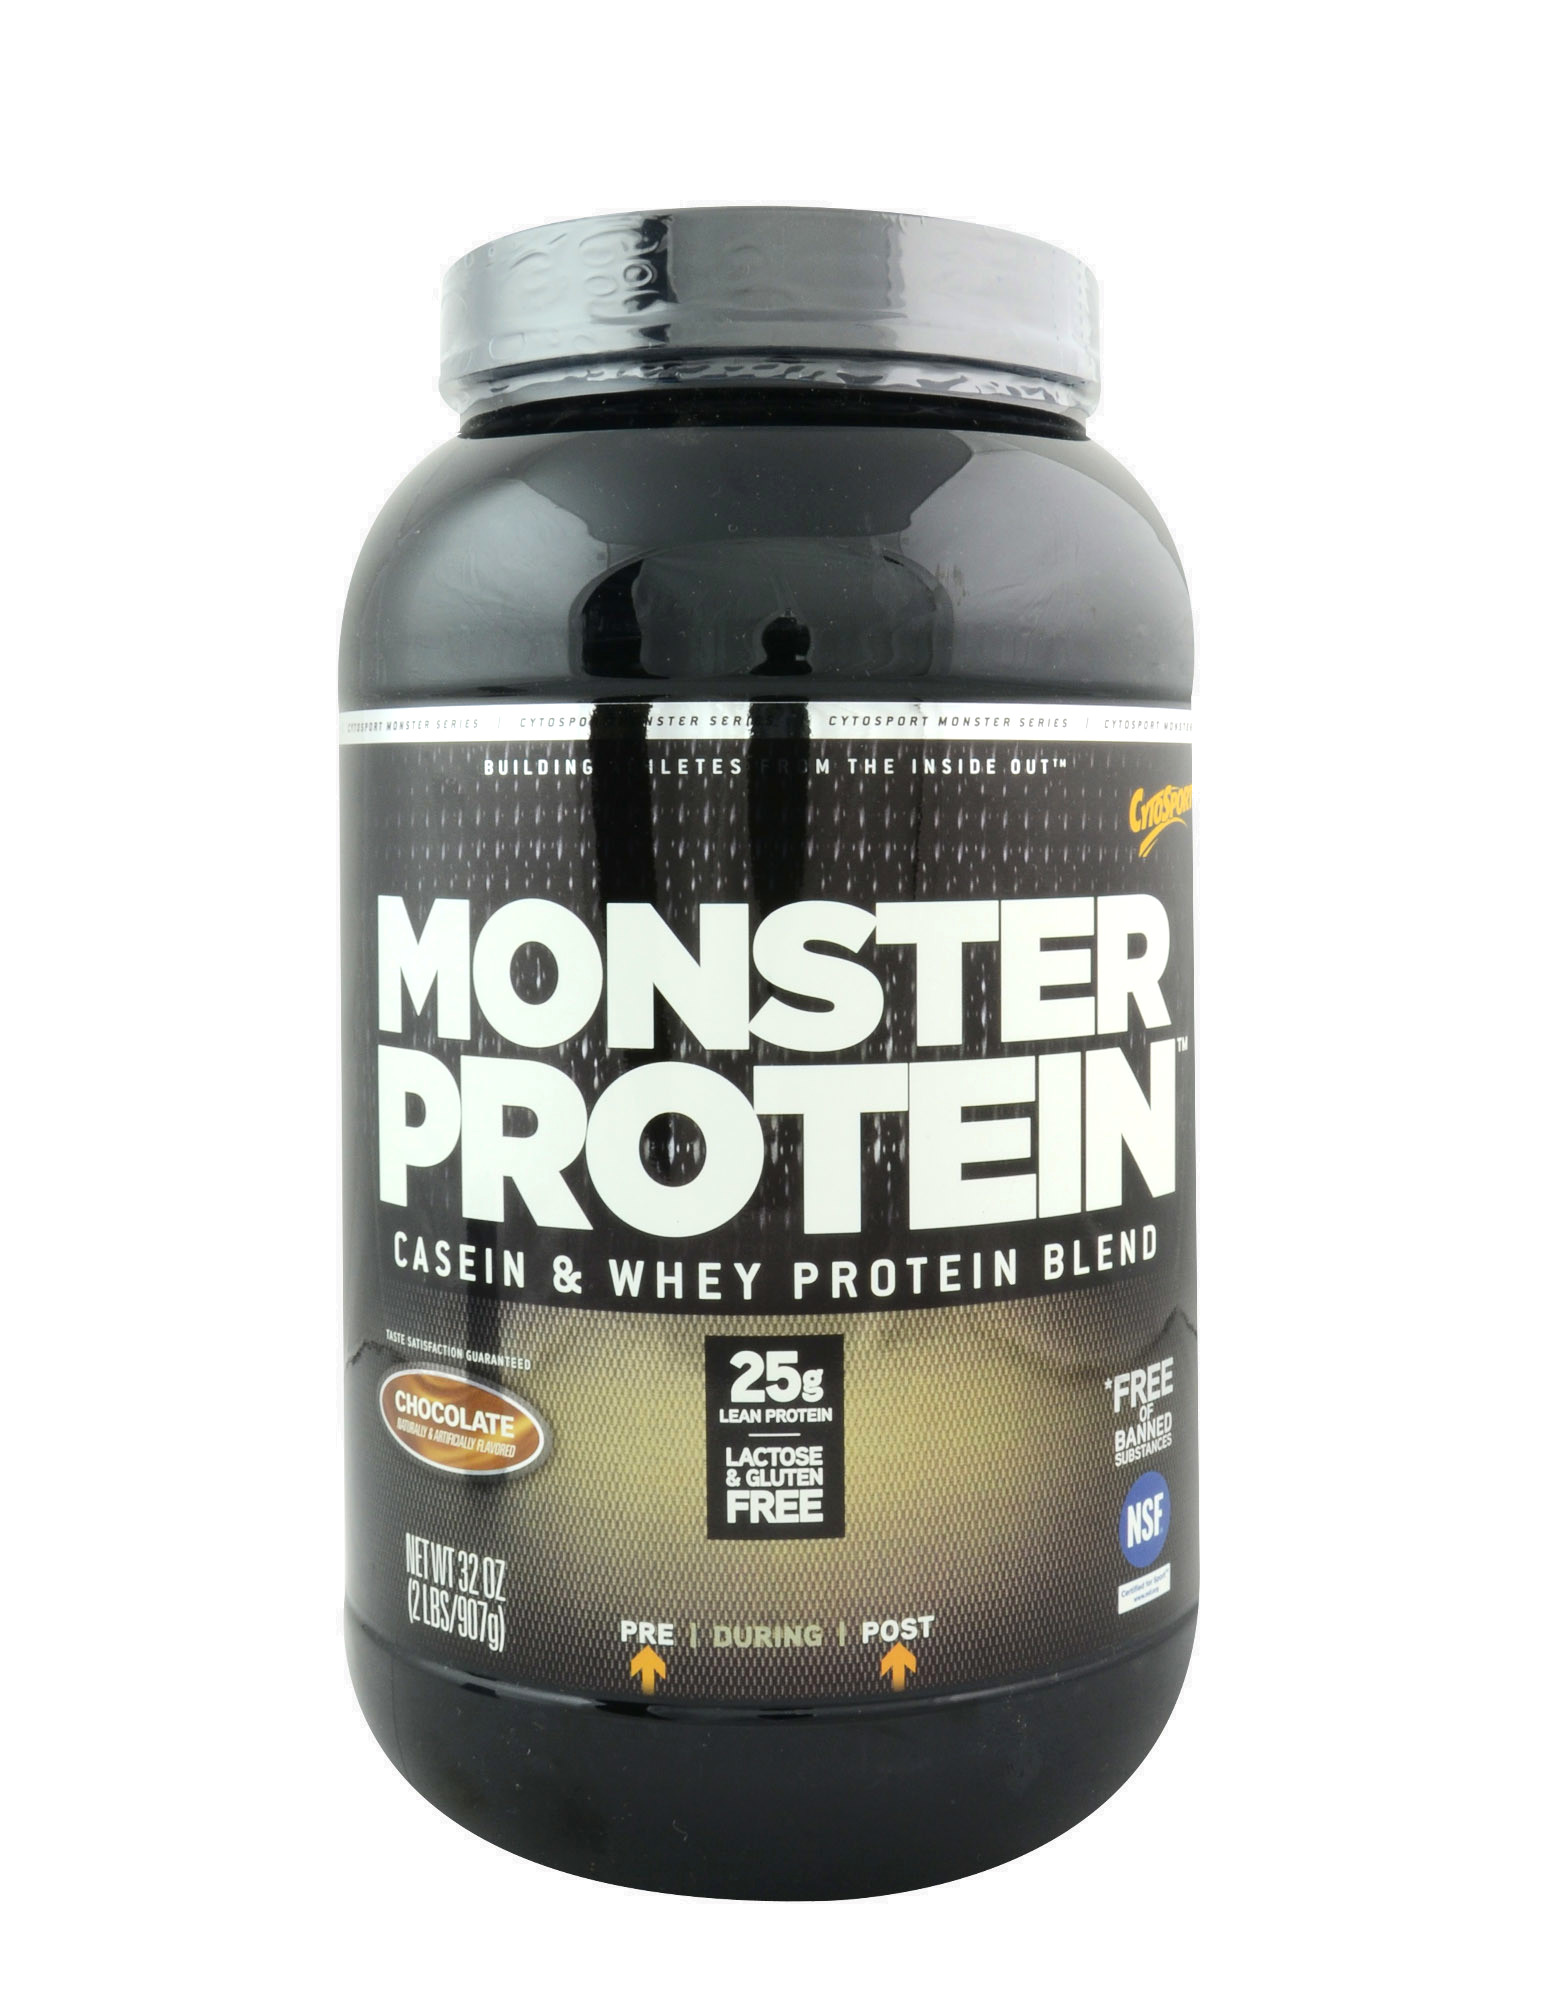 Monster Protein by Cytosport, 907 grams